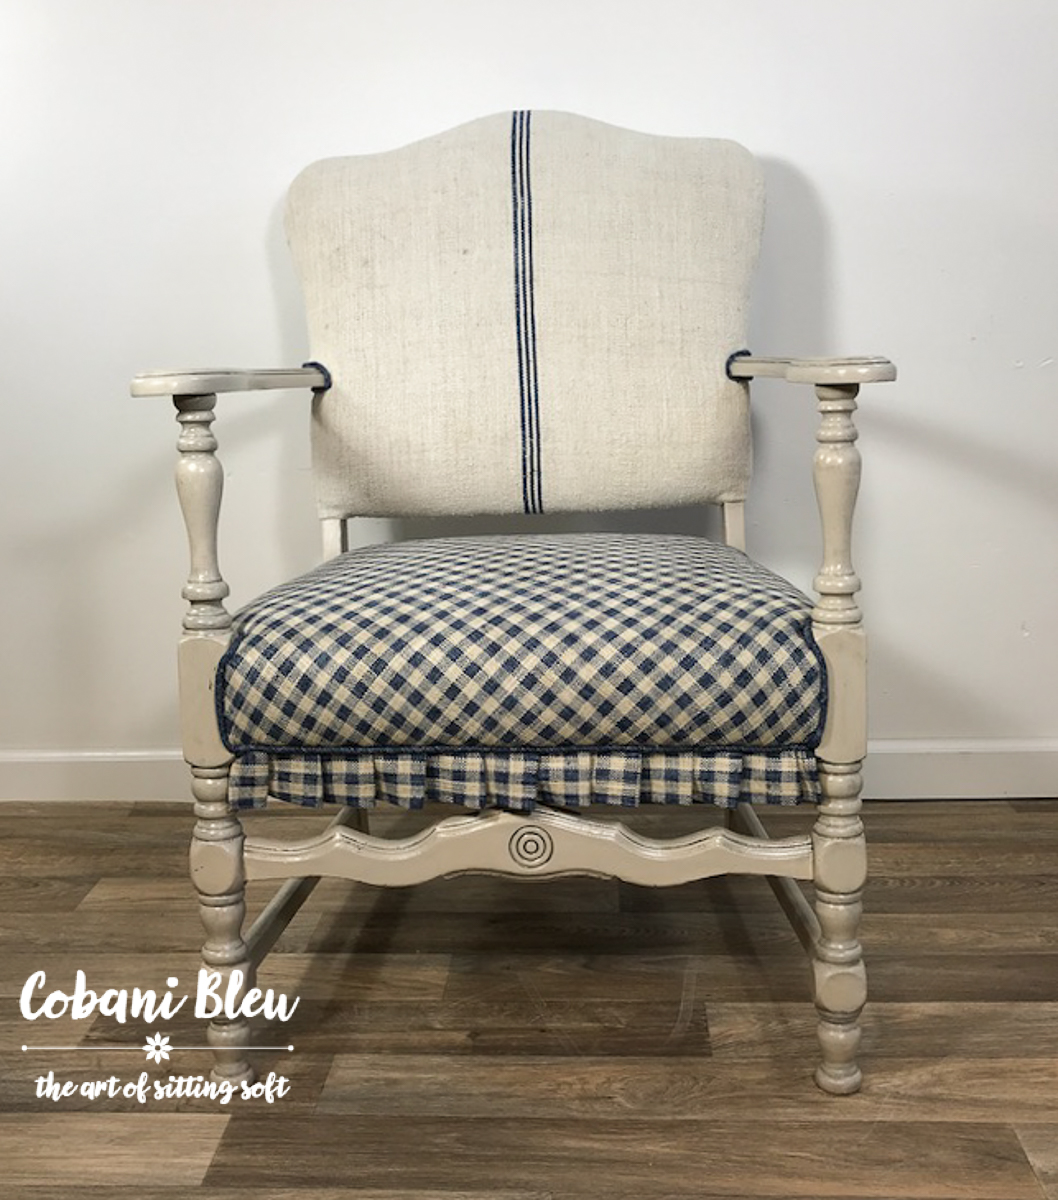 Grain Sack Chair How To Rock A Grainsack And Gingham Chair Cobani Bleu